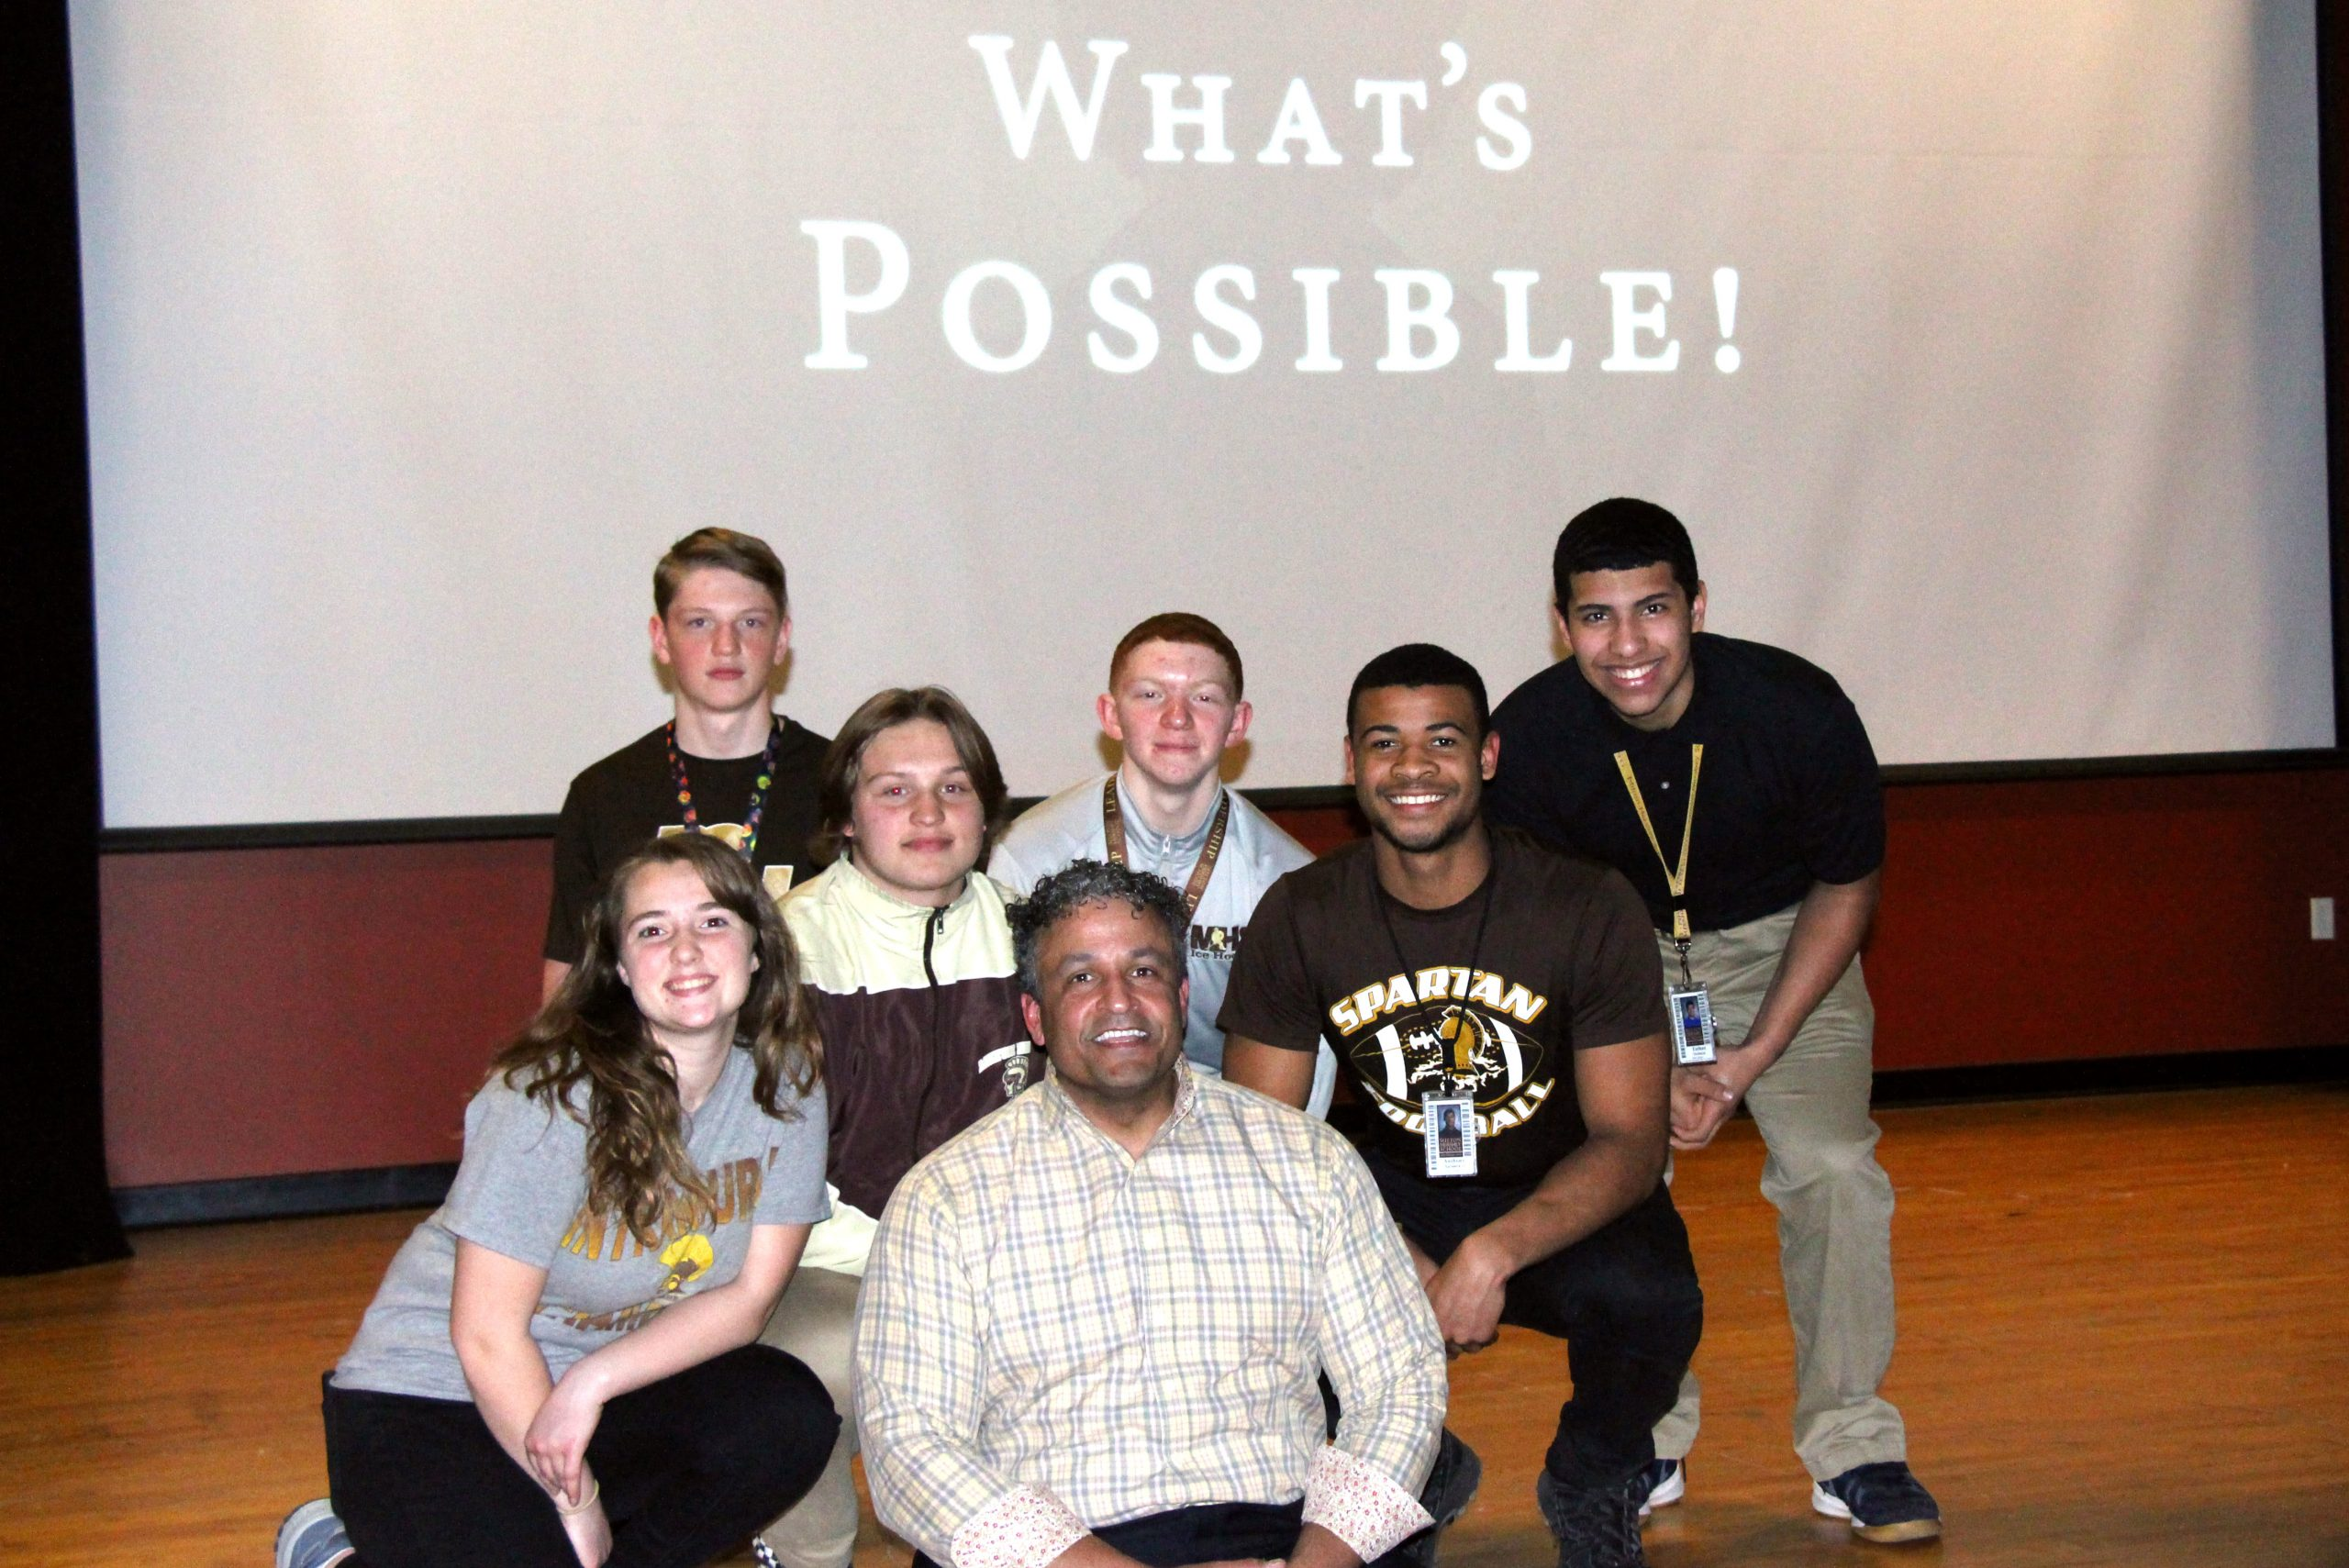 Author JT McCormick poses for a group photo with Milton Hershey School students during a recent visit to the school.